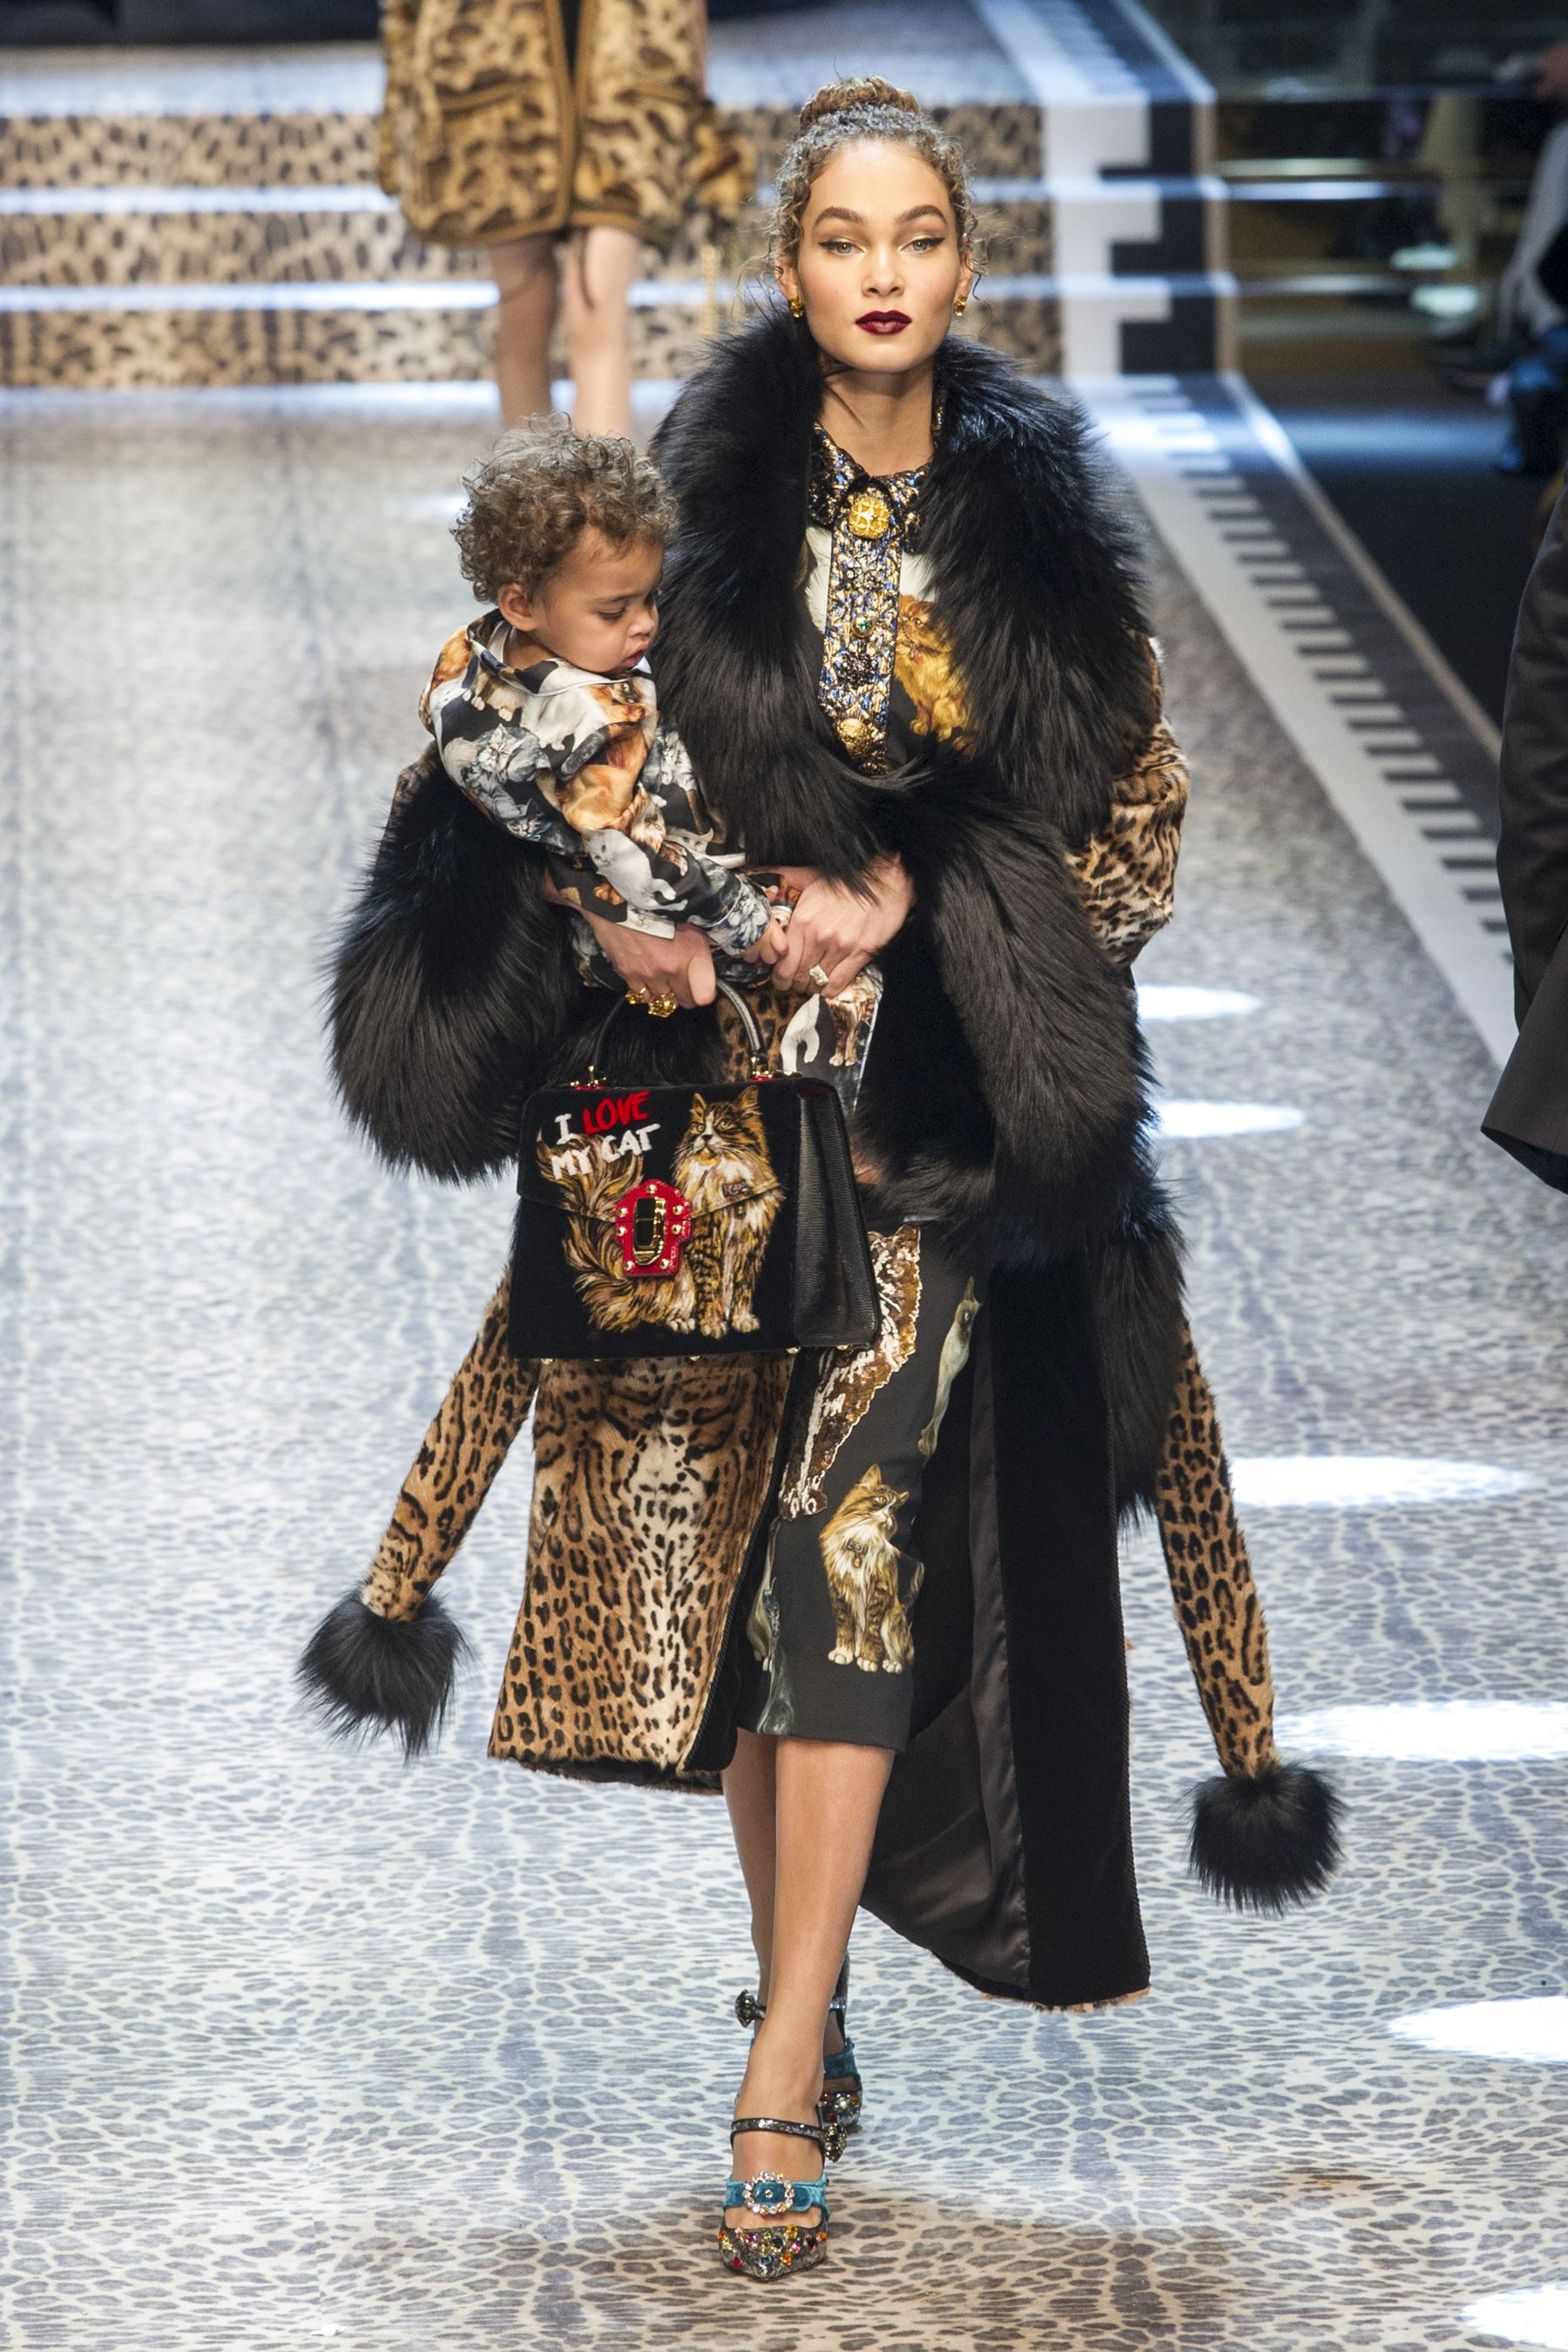 All the looks from the Dolce & Gabbana AW17 Collection Milan Fashion Week